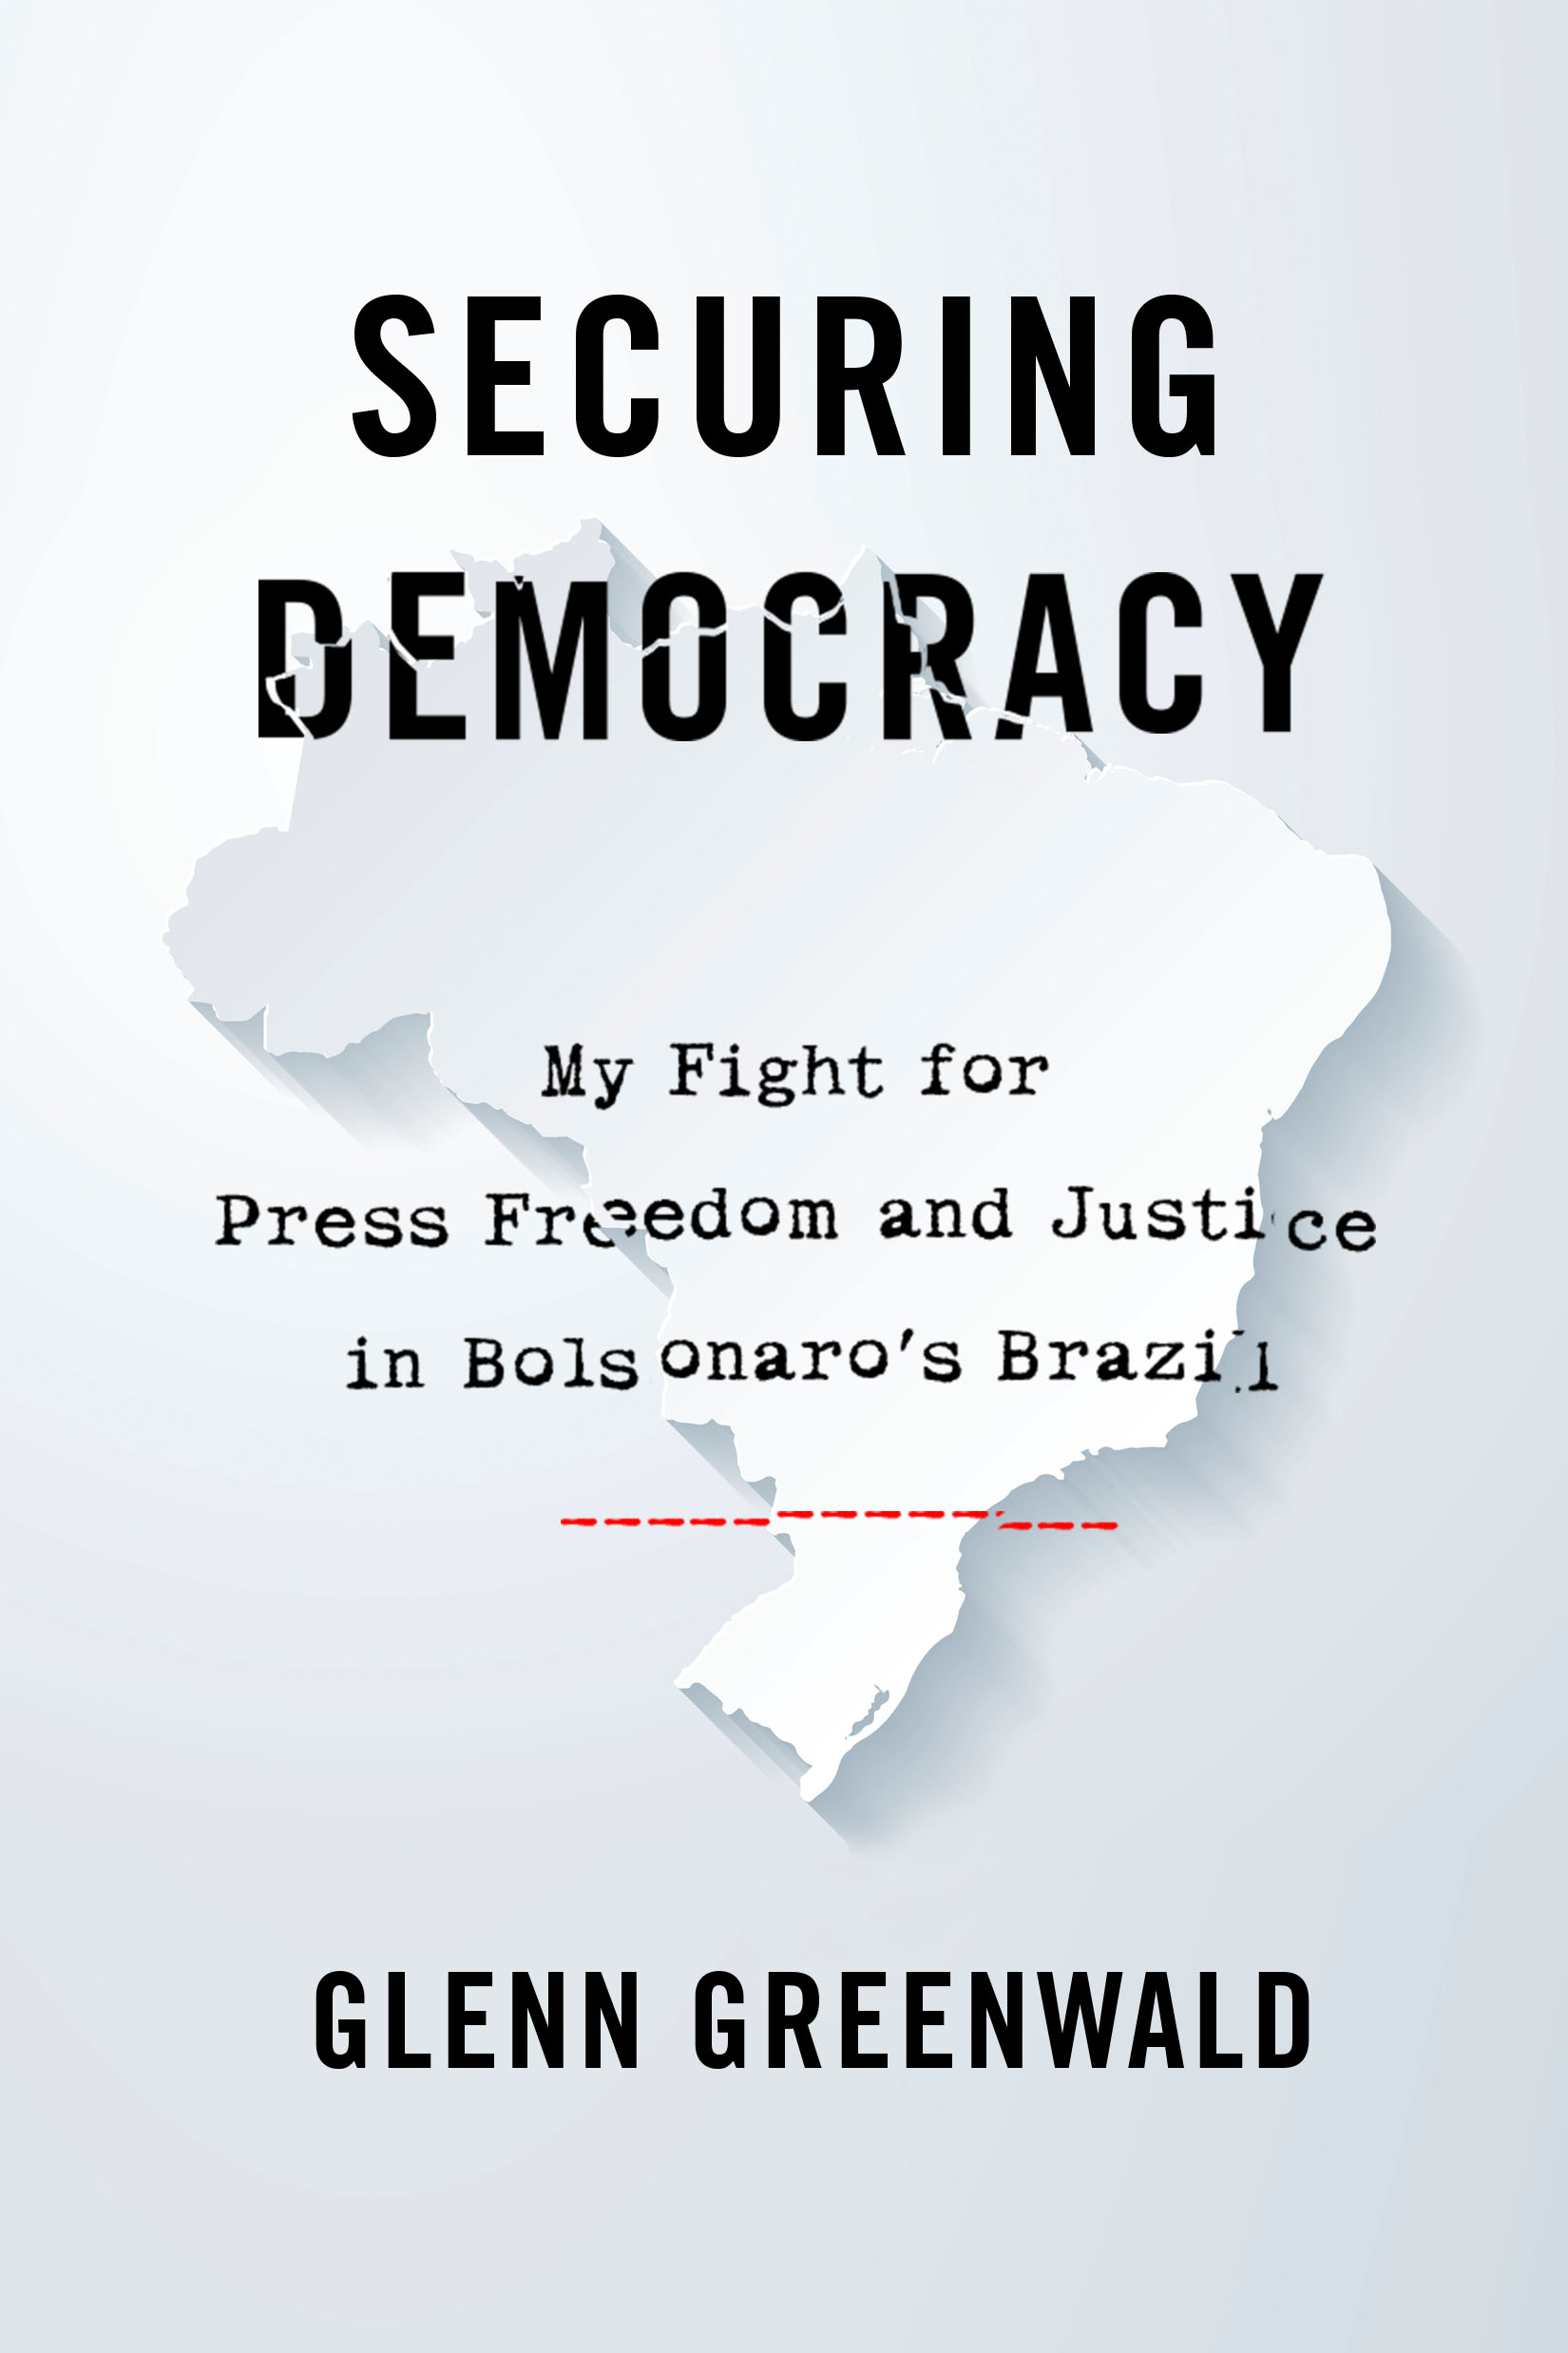 Cover Image of Securing Democracy